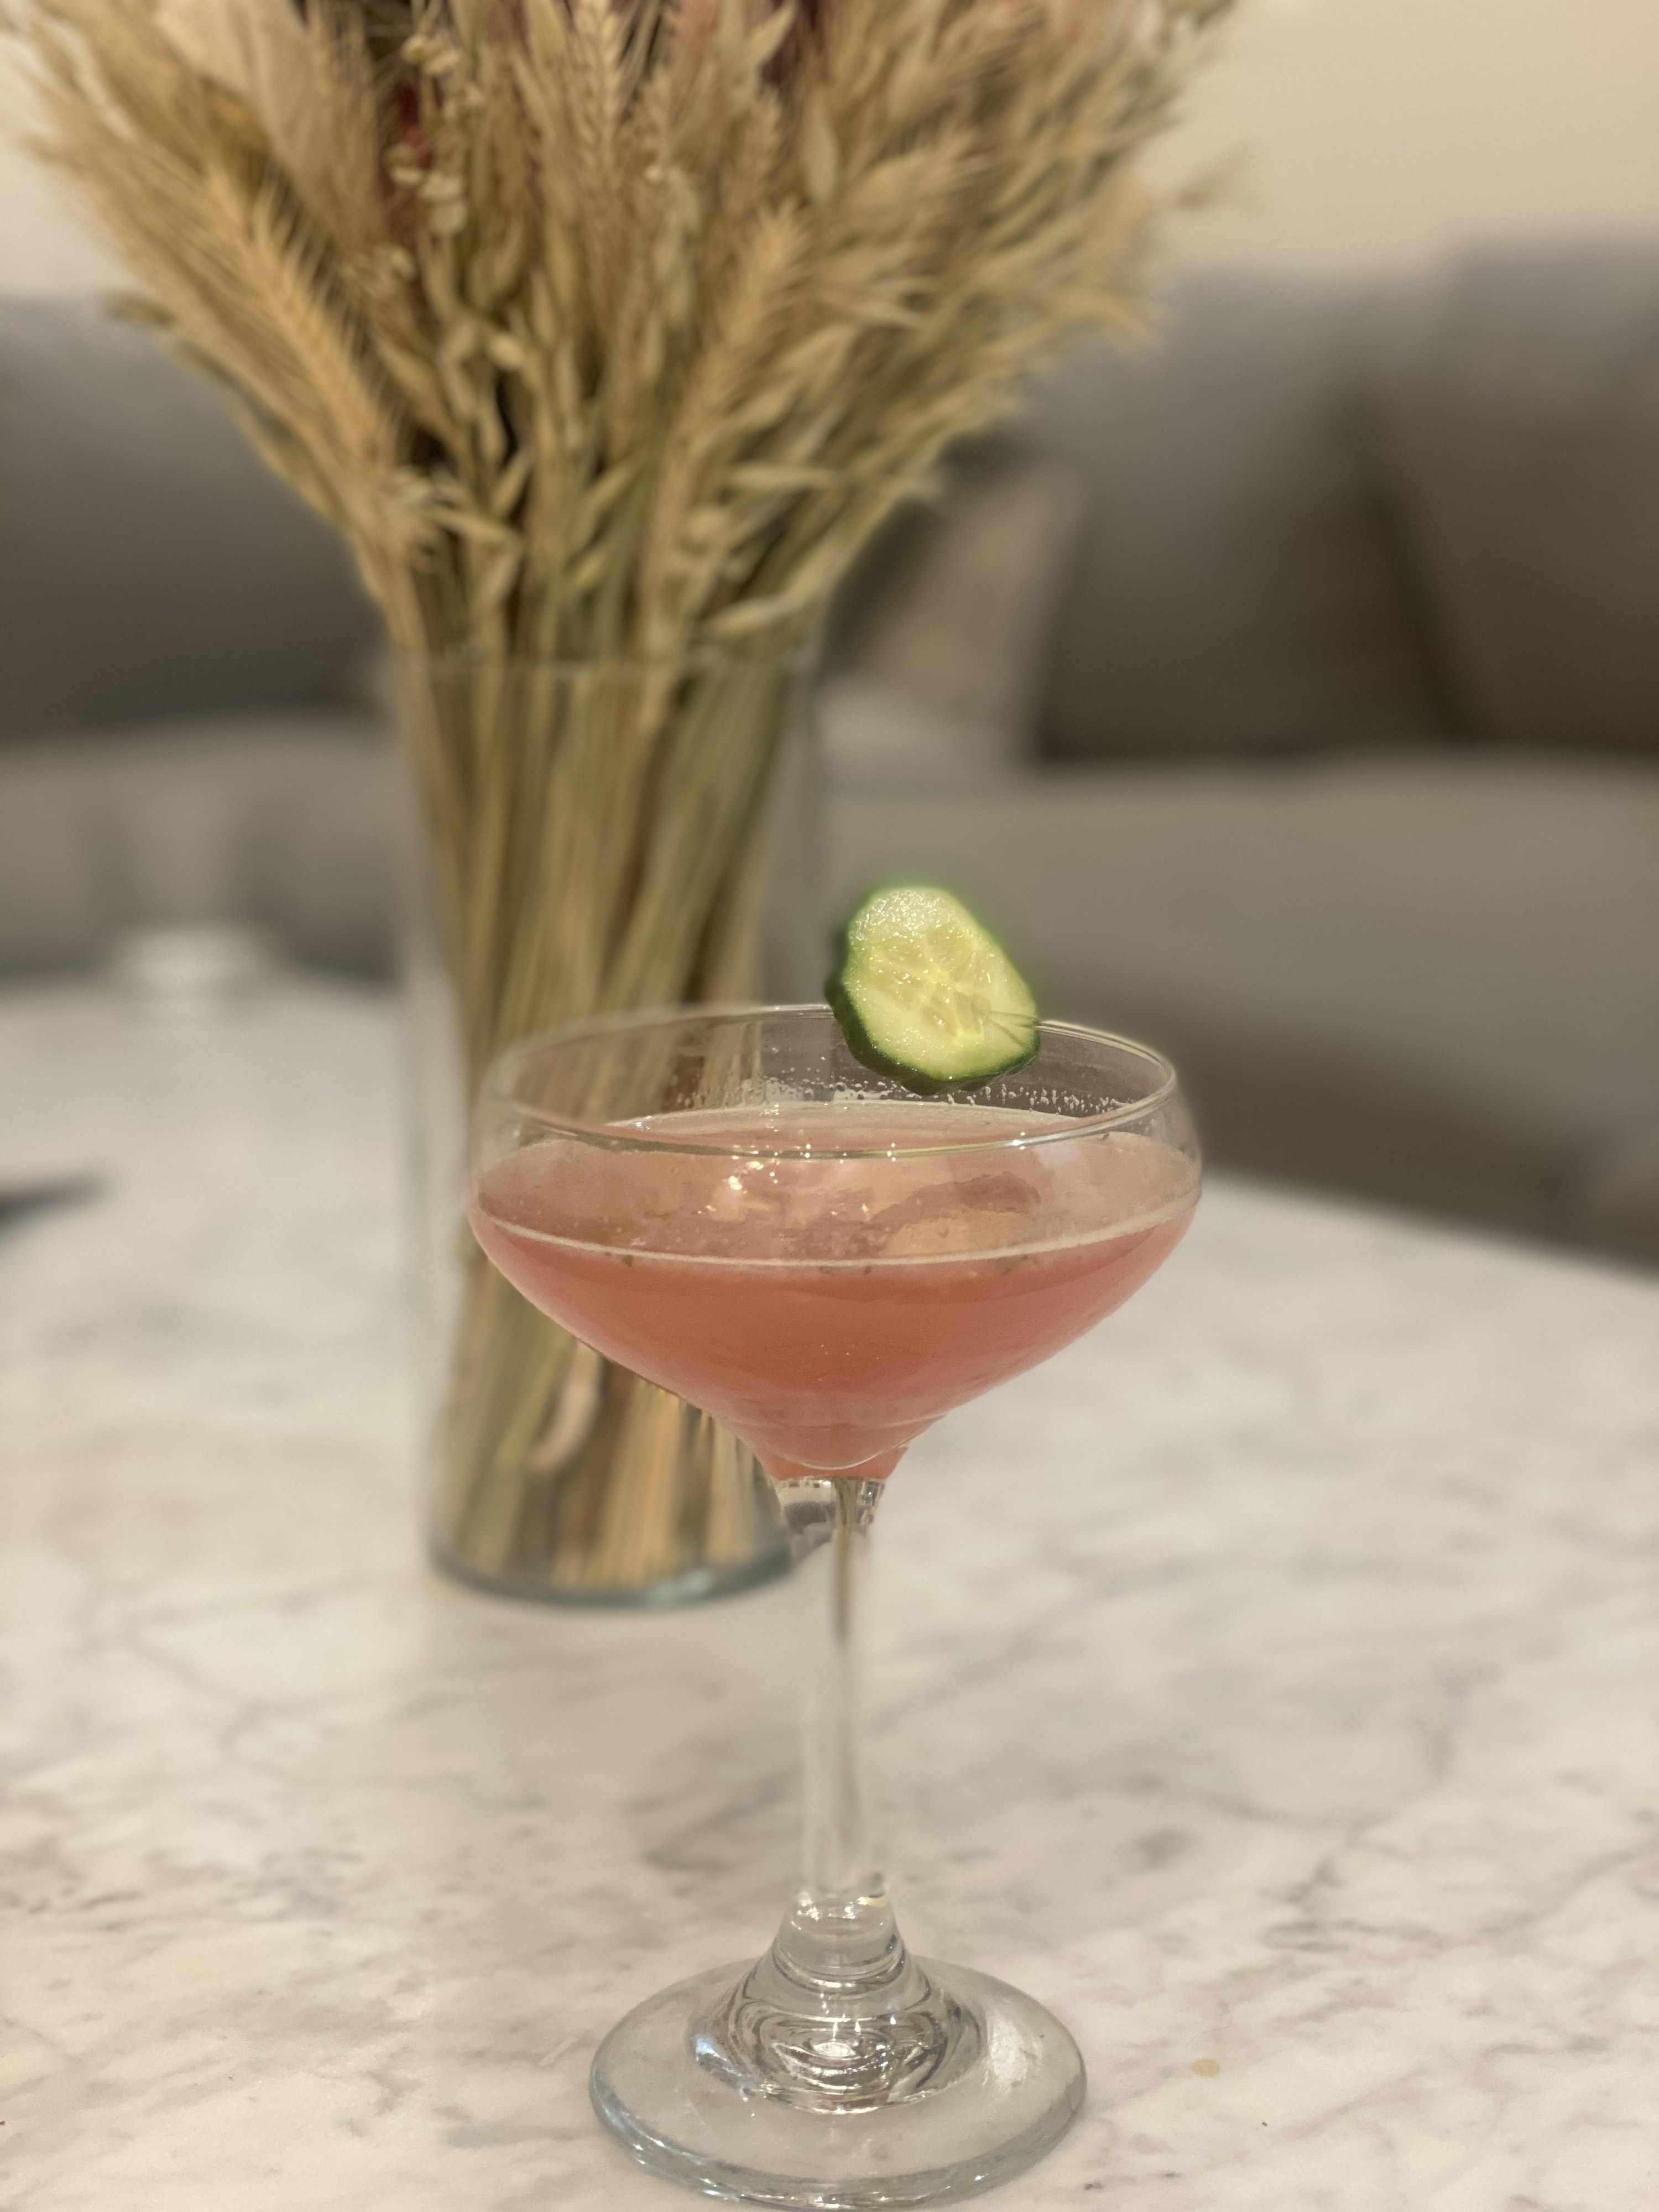 A booze-free Cosmopolitan garnished with a cucumber.